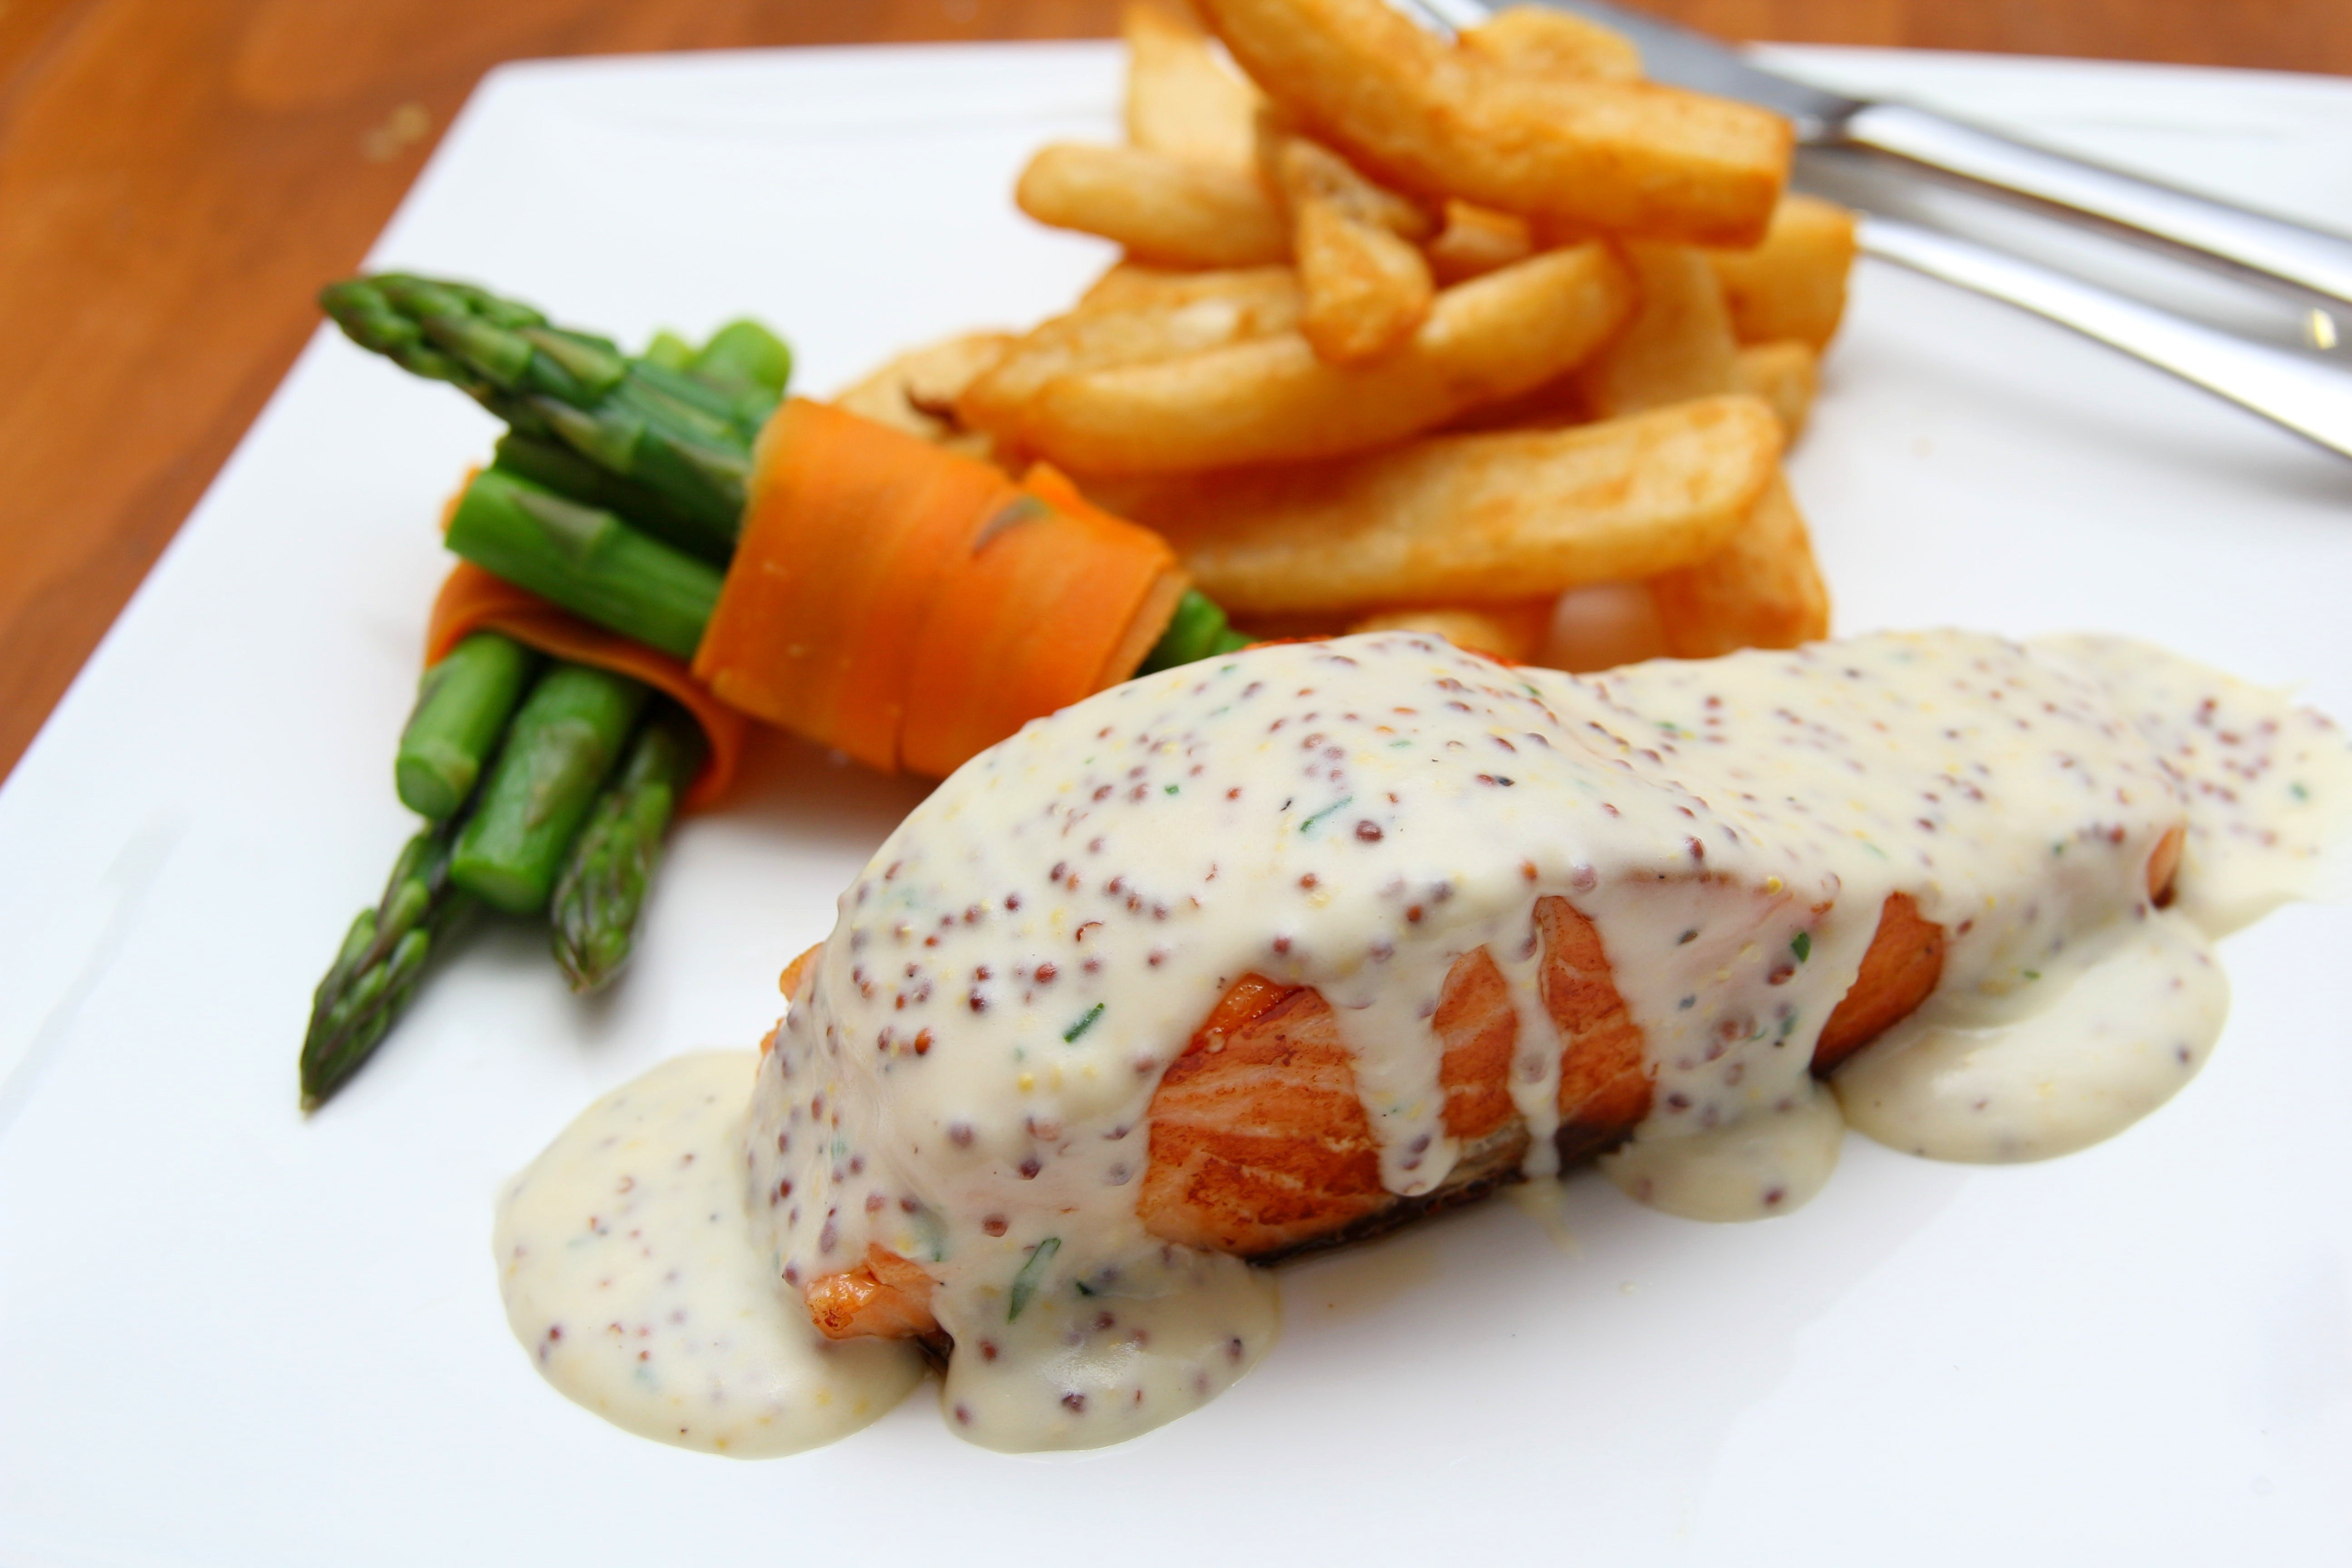 White Sauce Toppings on Food, Calories, Fries, Restaurant, Meal, HQ Photo